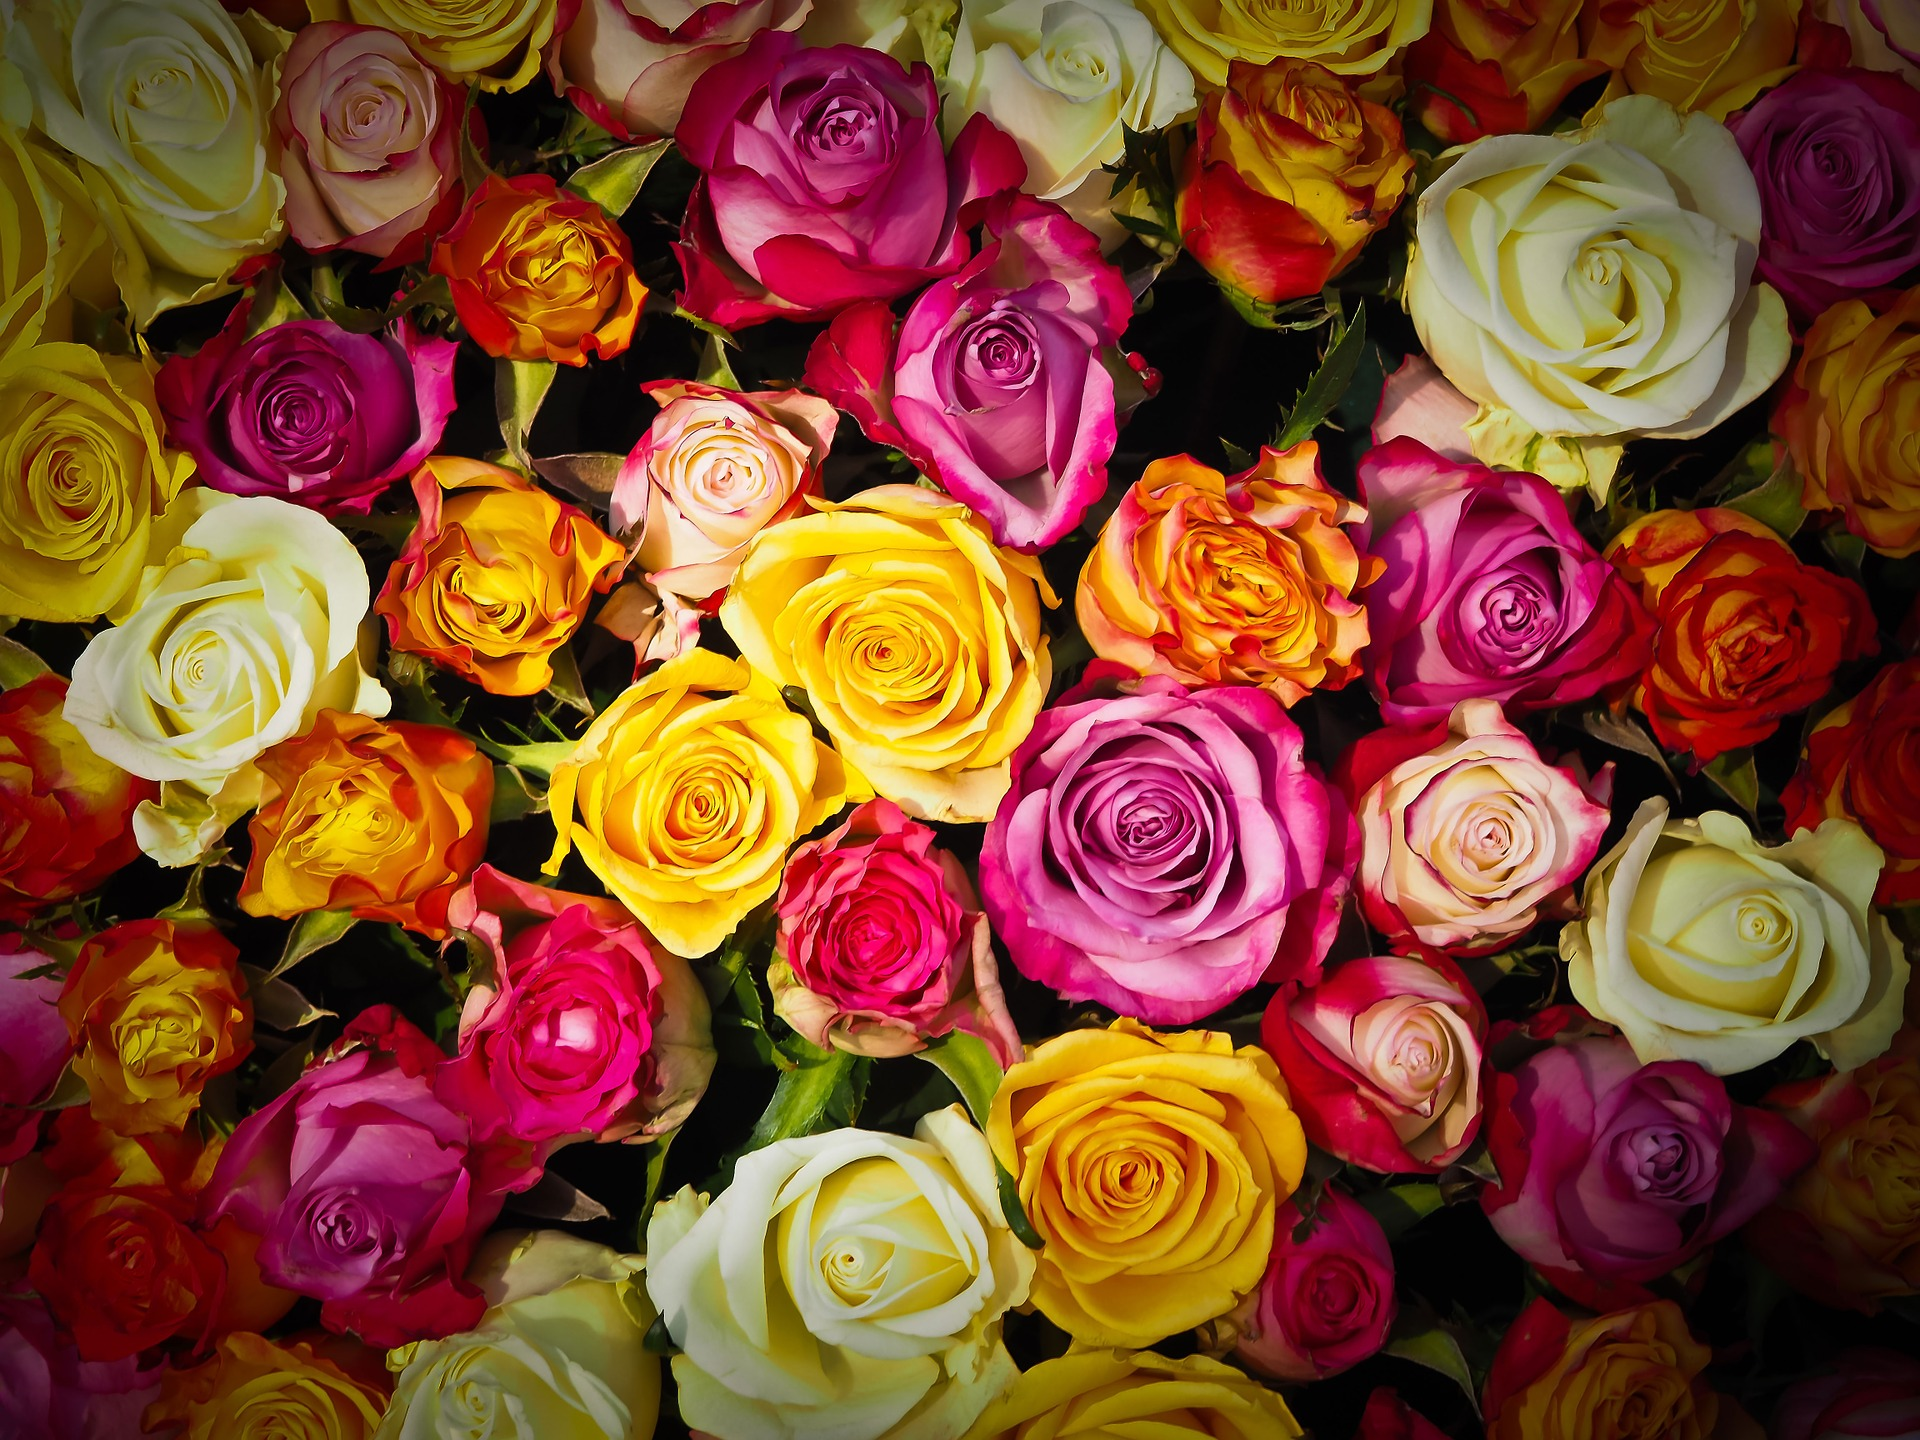 6 Facts about Roses